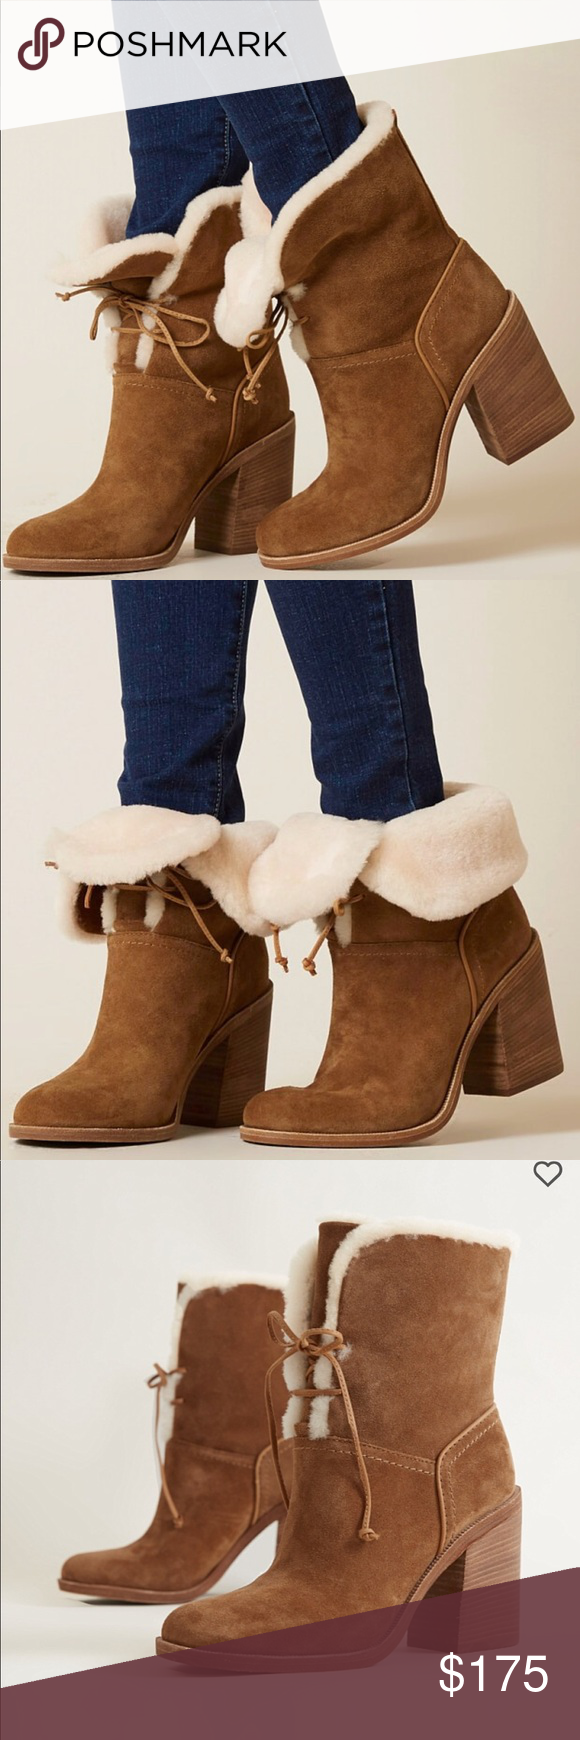 ecf10135459 UGG Chestnut Jerene Boot Classic UGG Chestnut in a new chic ...